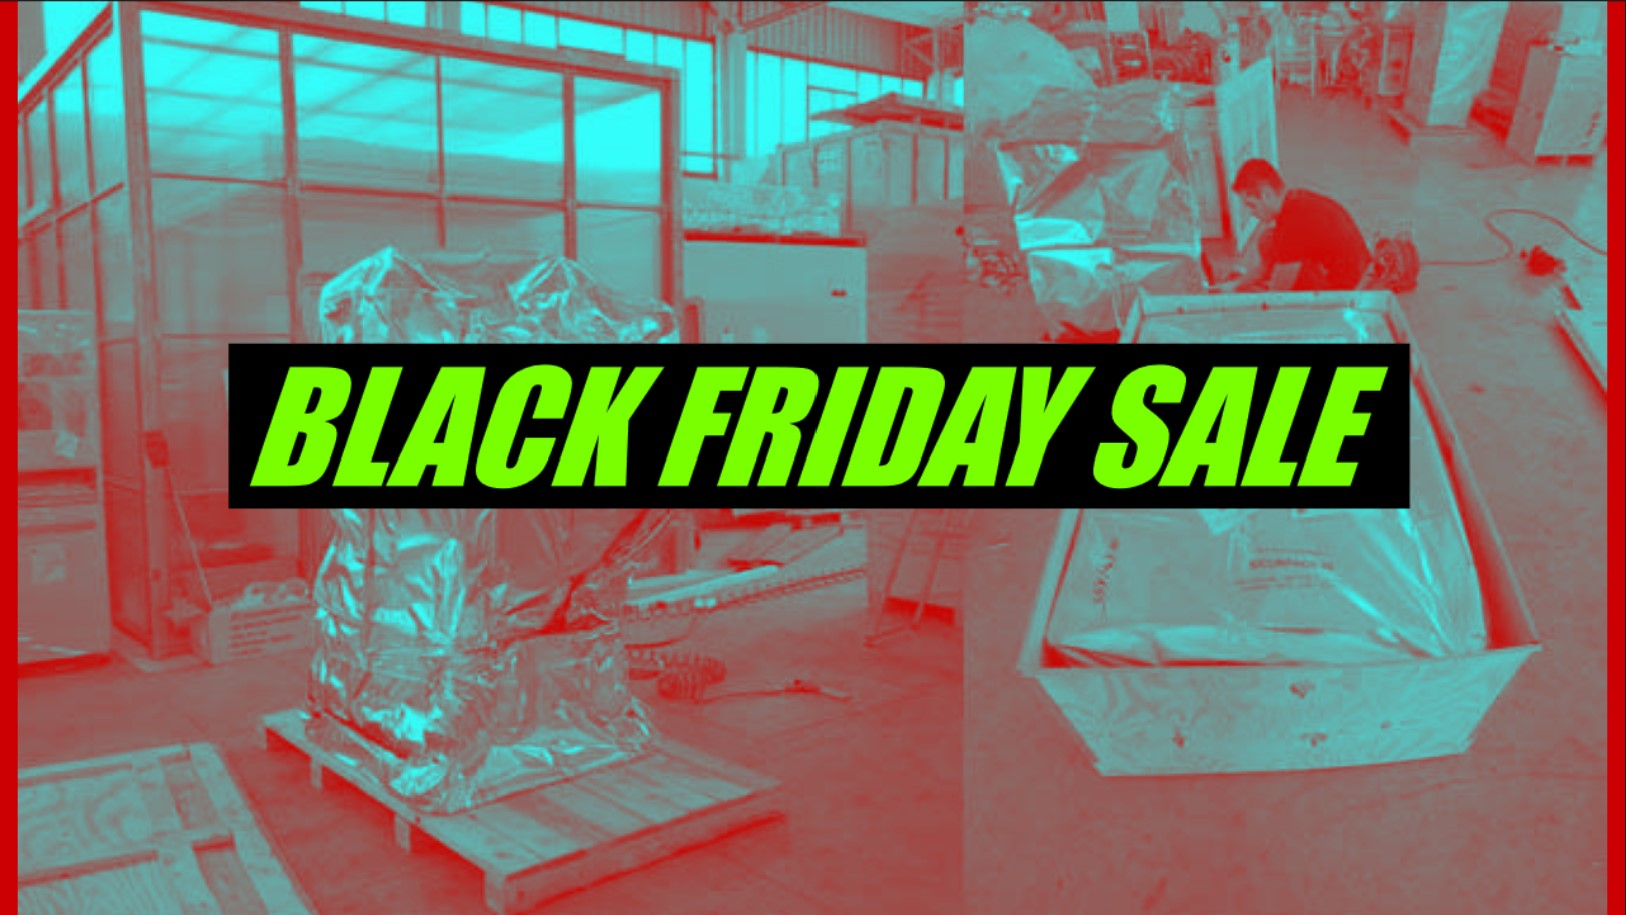 semiconductor black friday sale at SDI